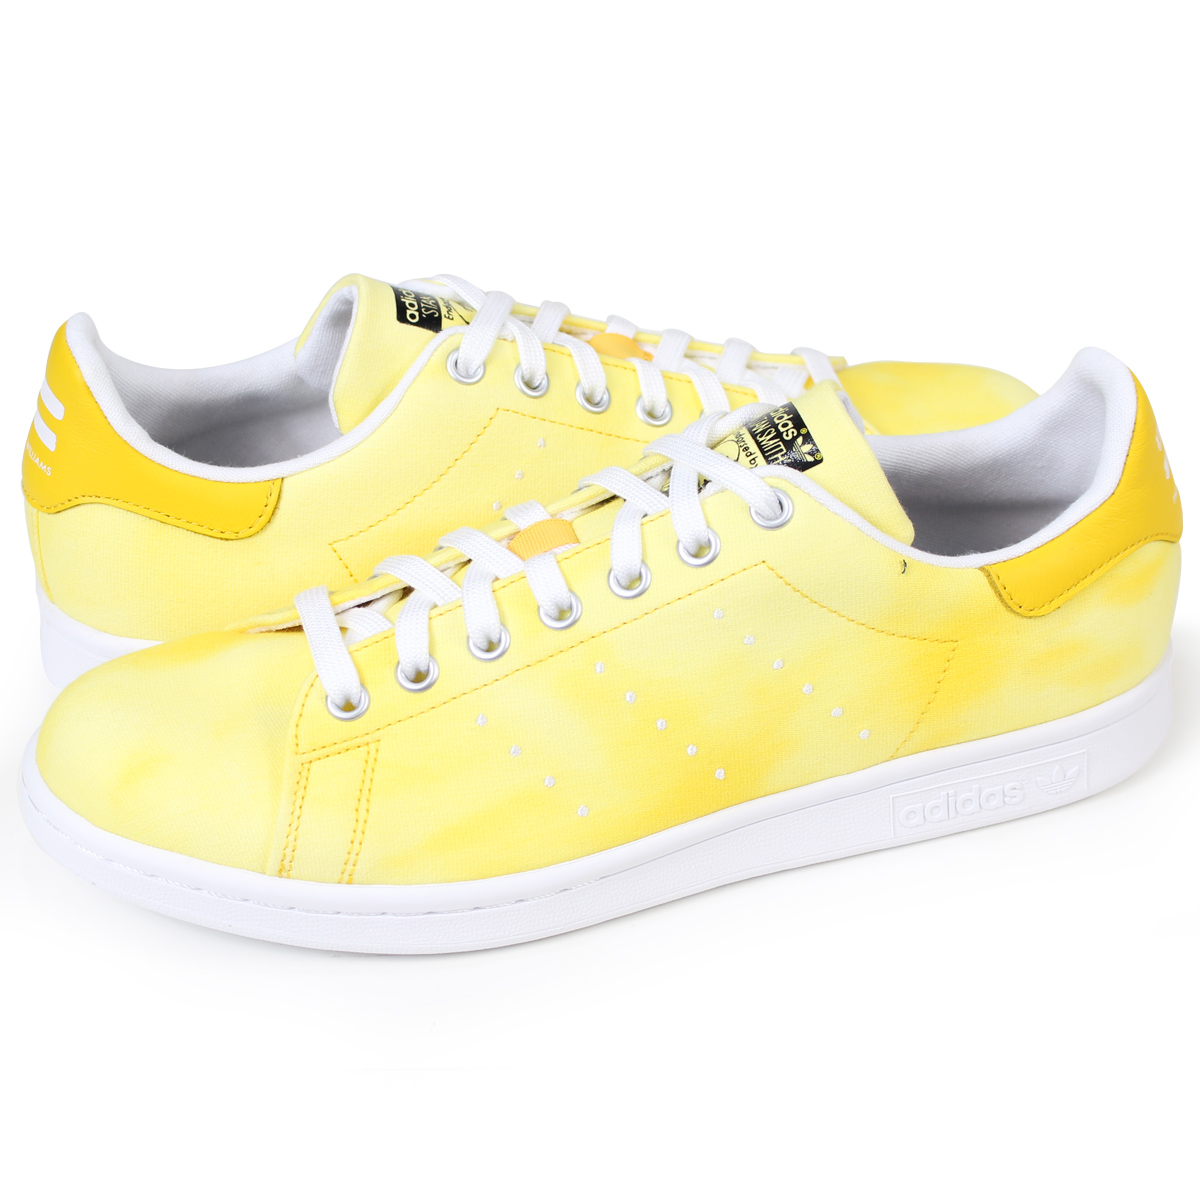 fe8ad6f202e8c adidas Originals PW HU HOLI STAN SMITH Adidas Stan Smith sneakers Farrell  Williams men collaboration AC7042 yellow originals  3 20 Shinnyu load